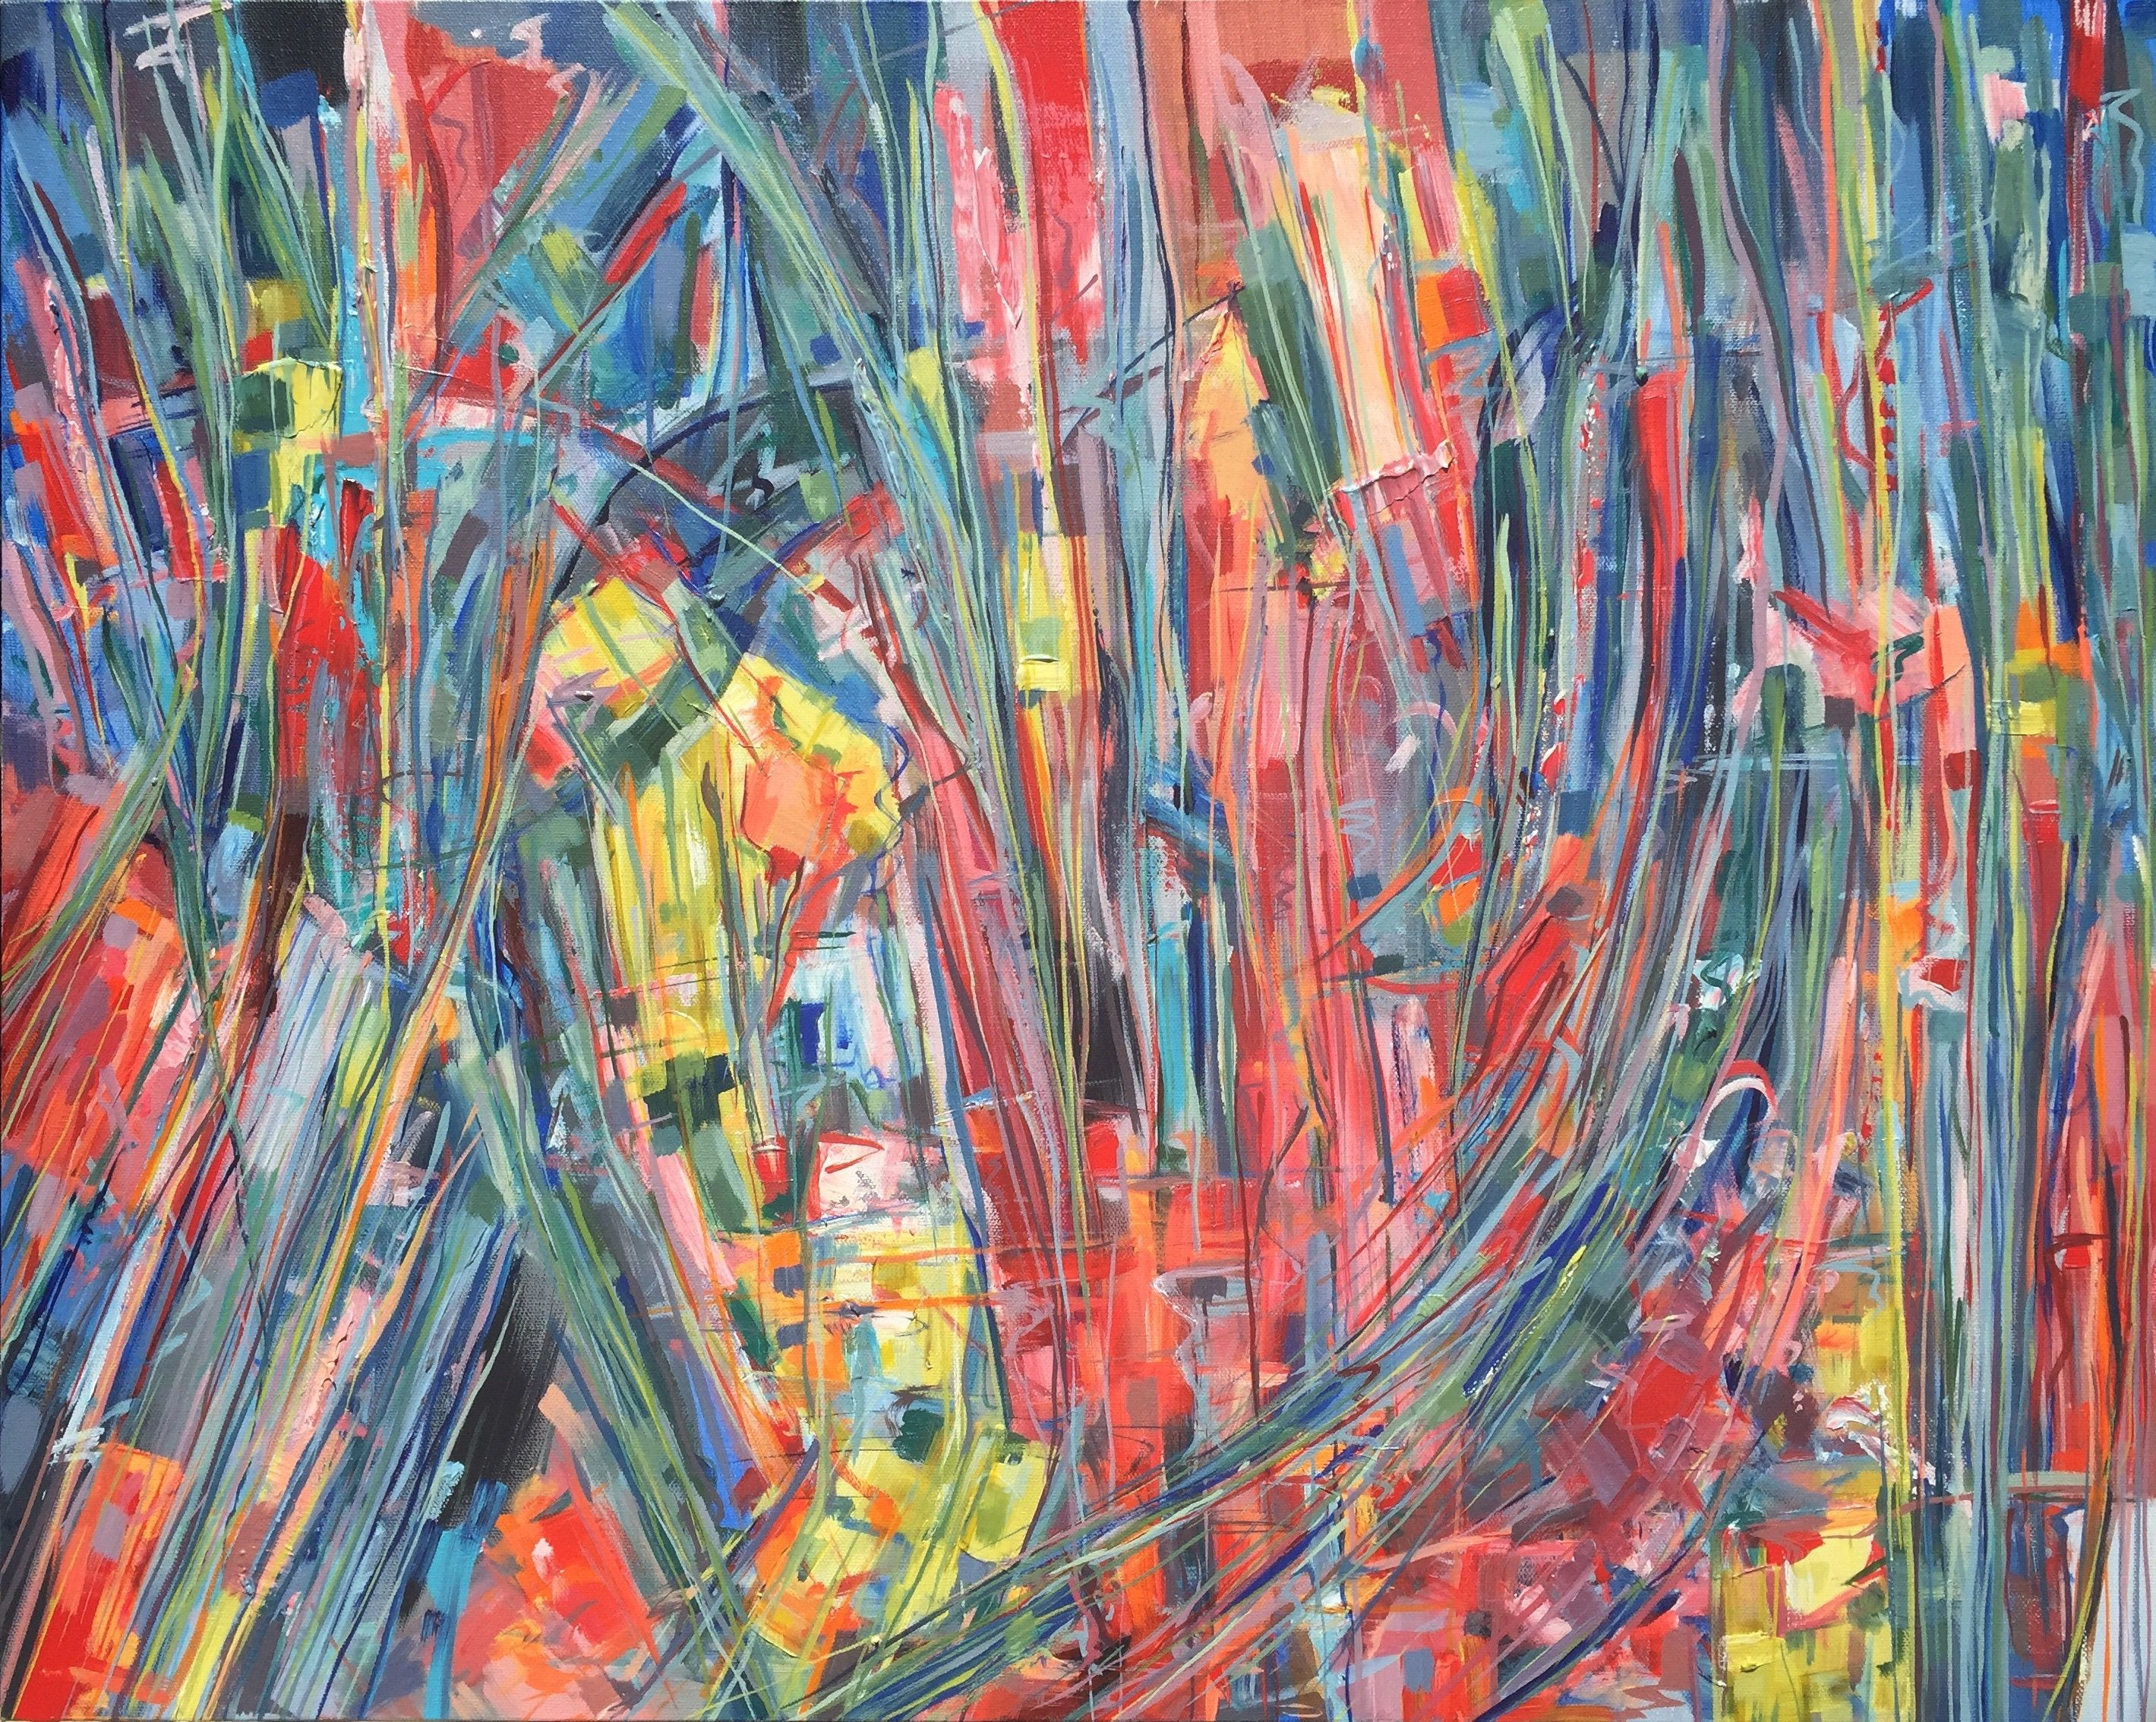 Original Abstract 8 x 10 Painting by Evan Saenger | Abstract Expressionism | Stretched Canvas